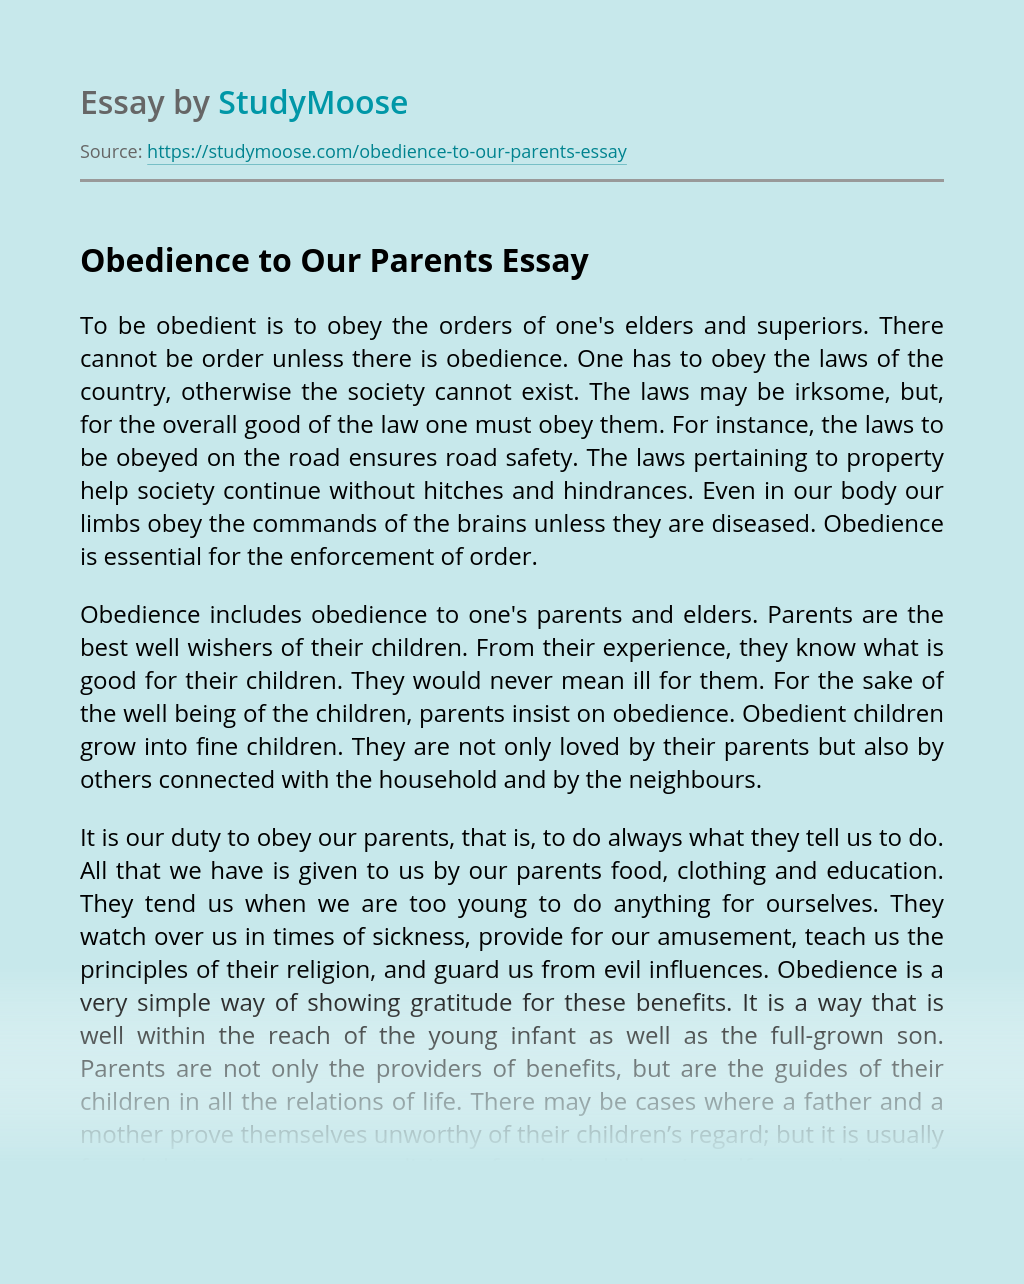 Obedience to Our Parents